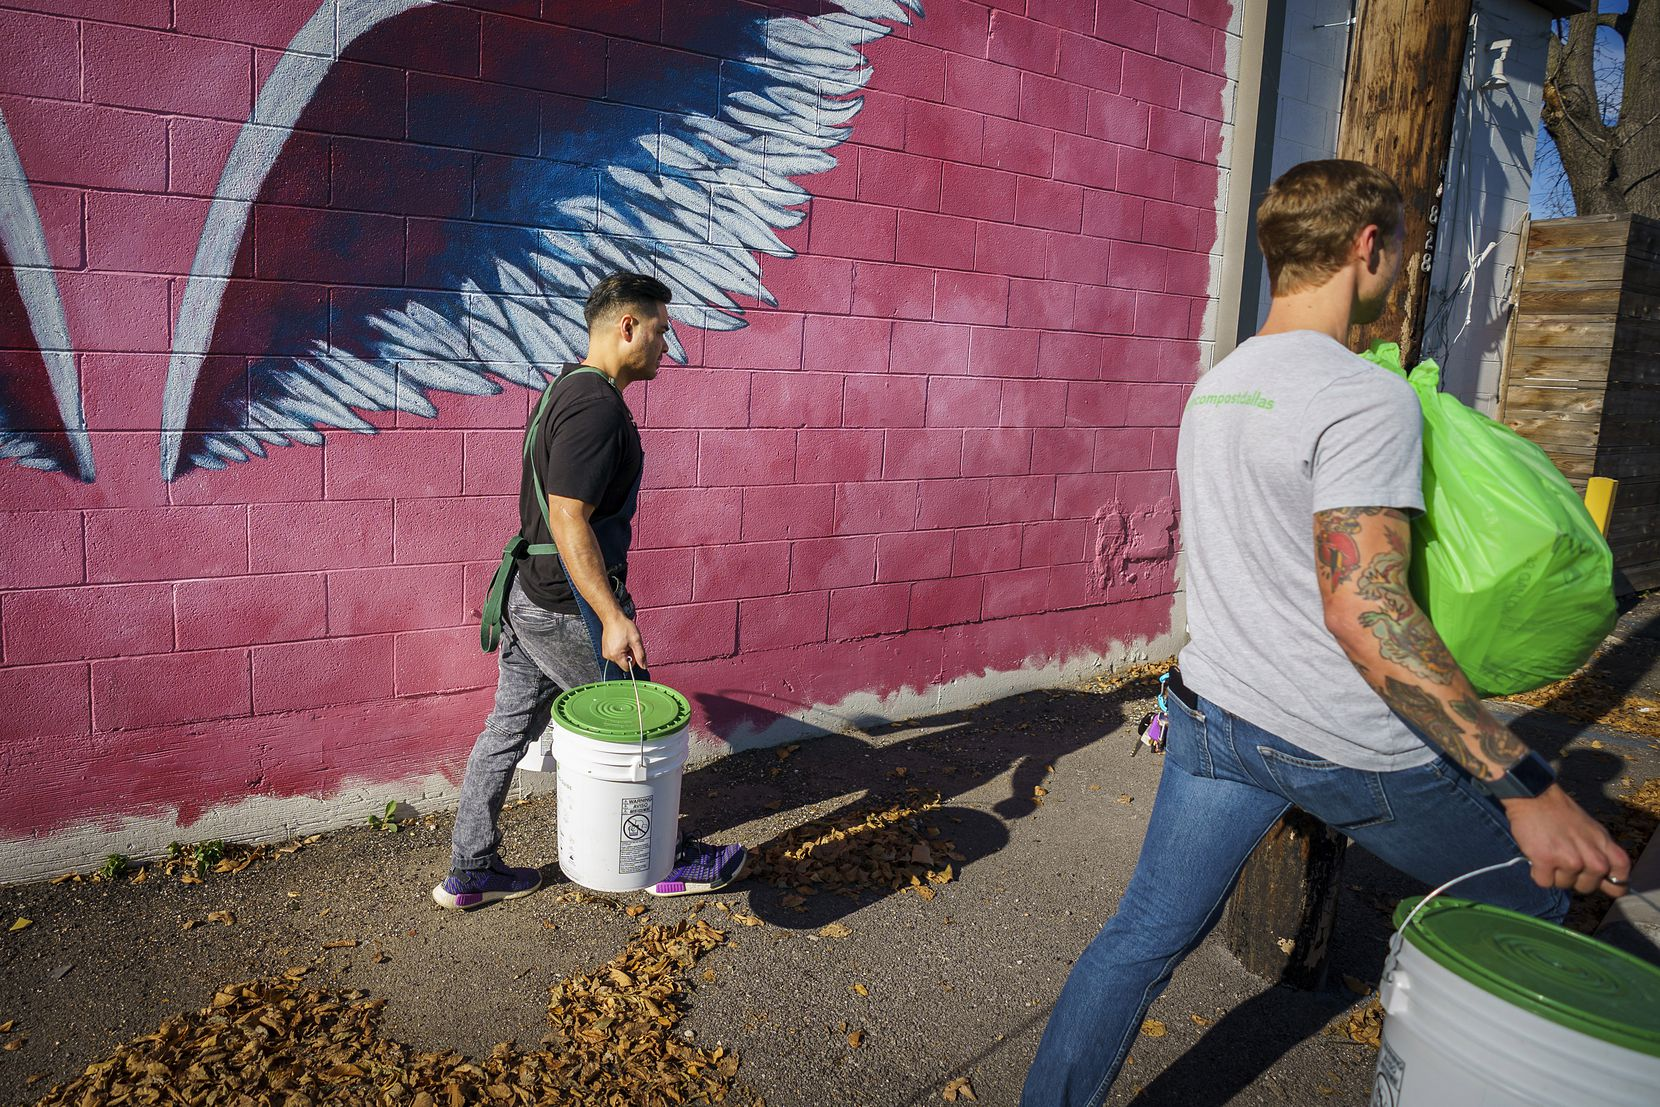 Donny Sirisavath (left), the chef and owner of Khao Noodle Shop, helps Wes Fitch of Turn Compost carry full buckets and bags of compostable materials to his vehicle during a pickup at the restaurant on Monday, Nov. 25, 2019, in Dallas. Turn Compost is a DFW-startup offering a service to pick up buckets compostable items that would otherwise end up in a landfill. (Smiley N. Pool/The Dallas Morning News)